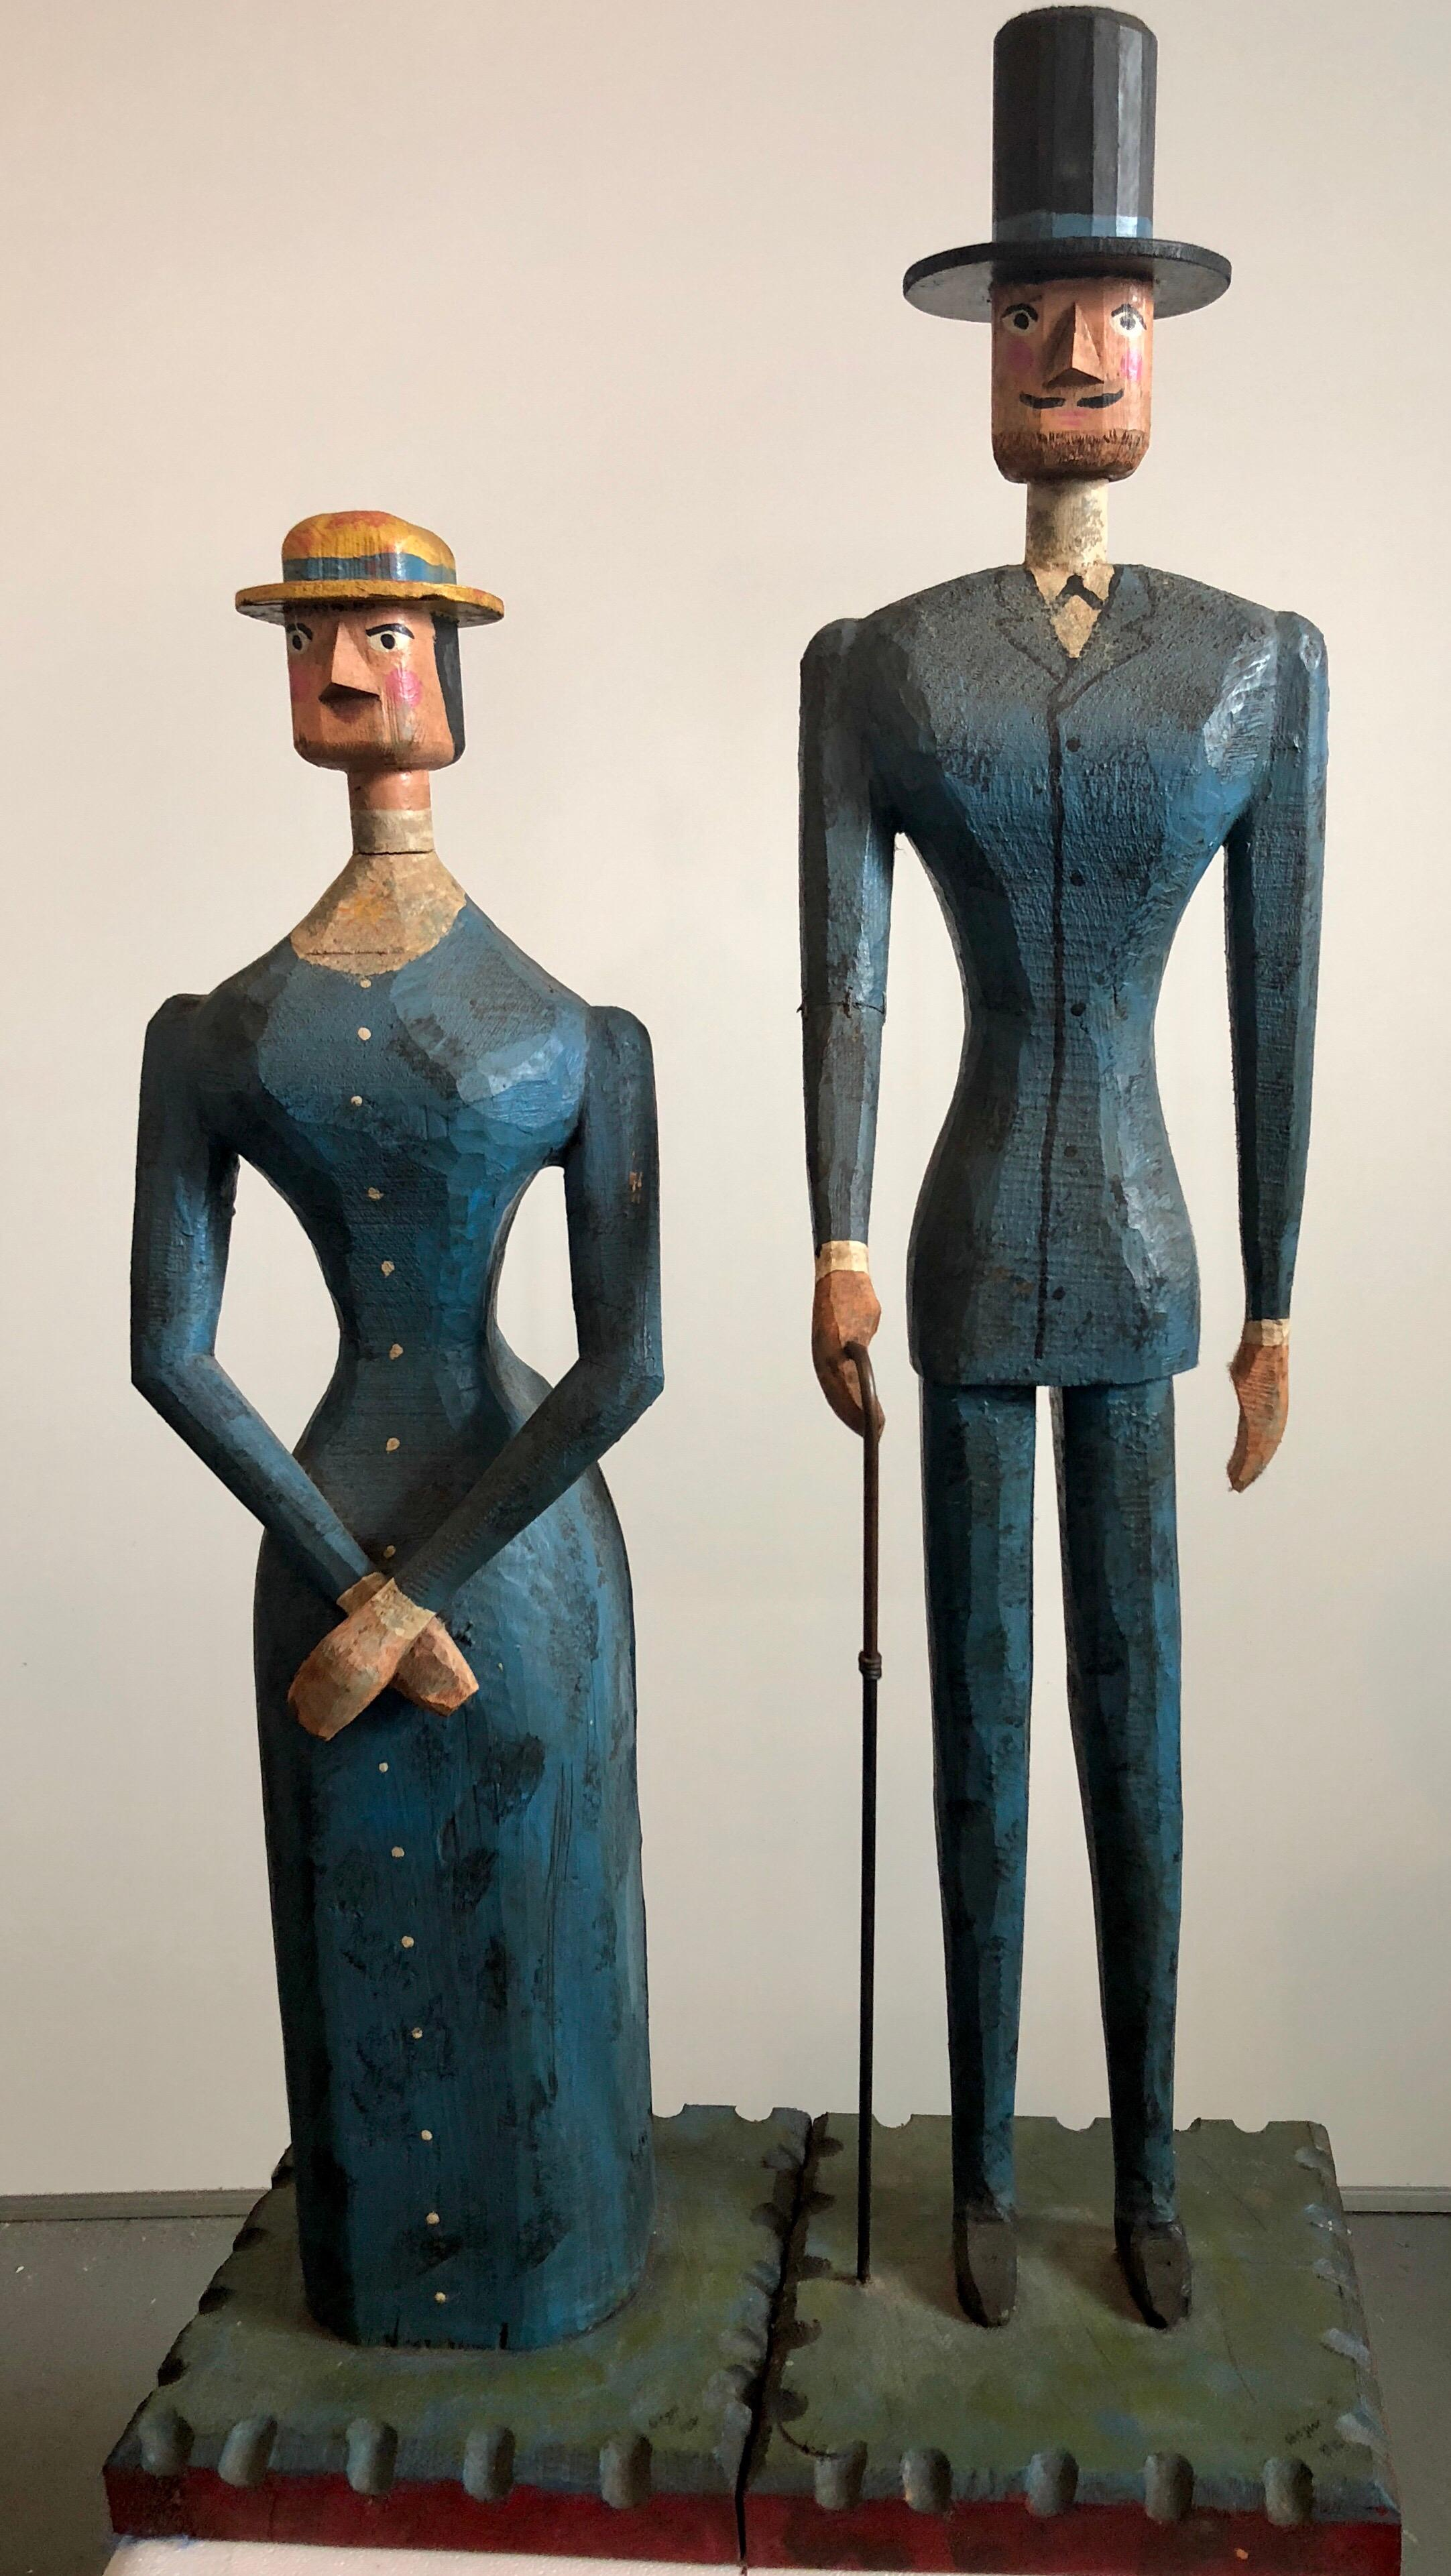 Hand Carved Painted Wood Folk Art Americana Sculpture Pair American Gothic